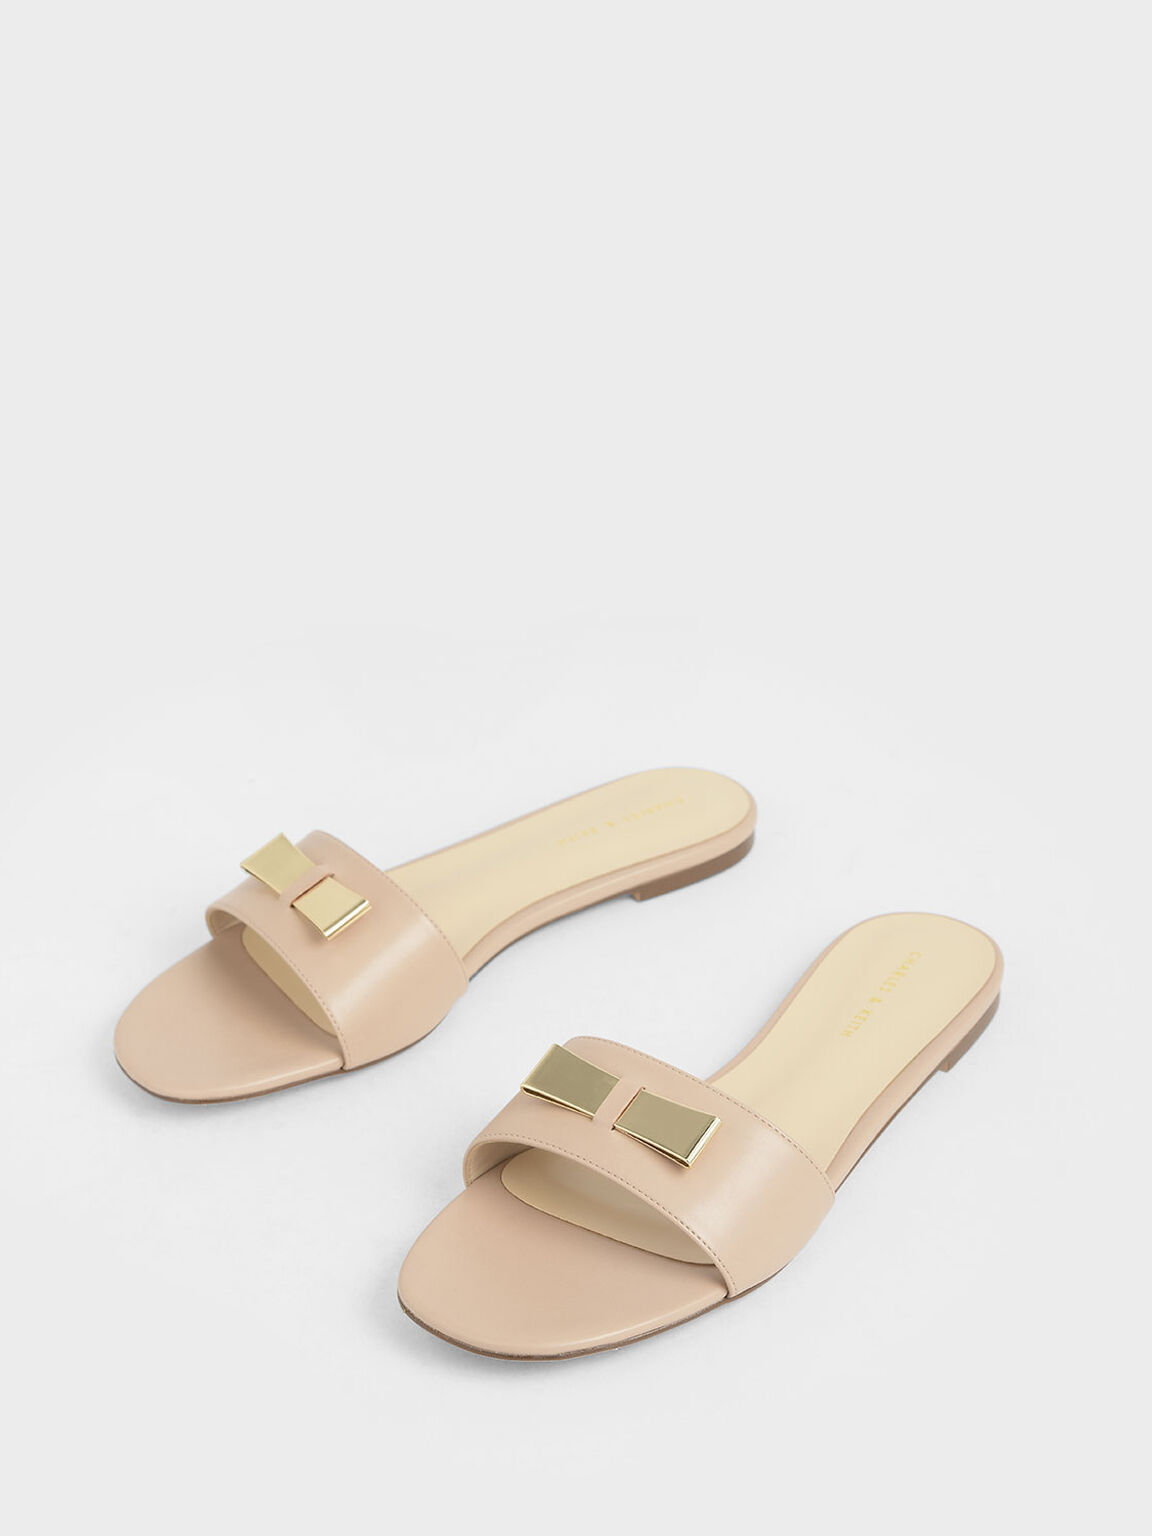 Metal Bow Slide Sandals, Nude, hi-res